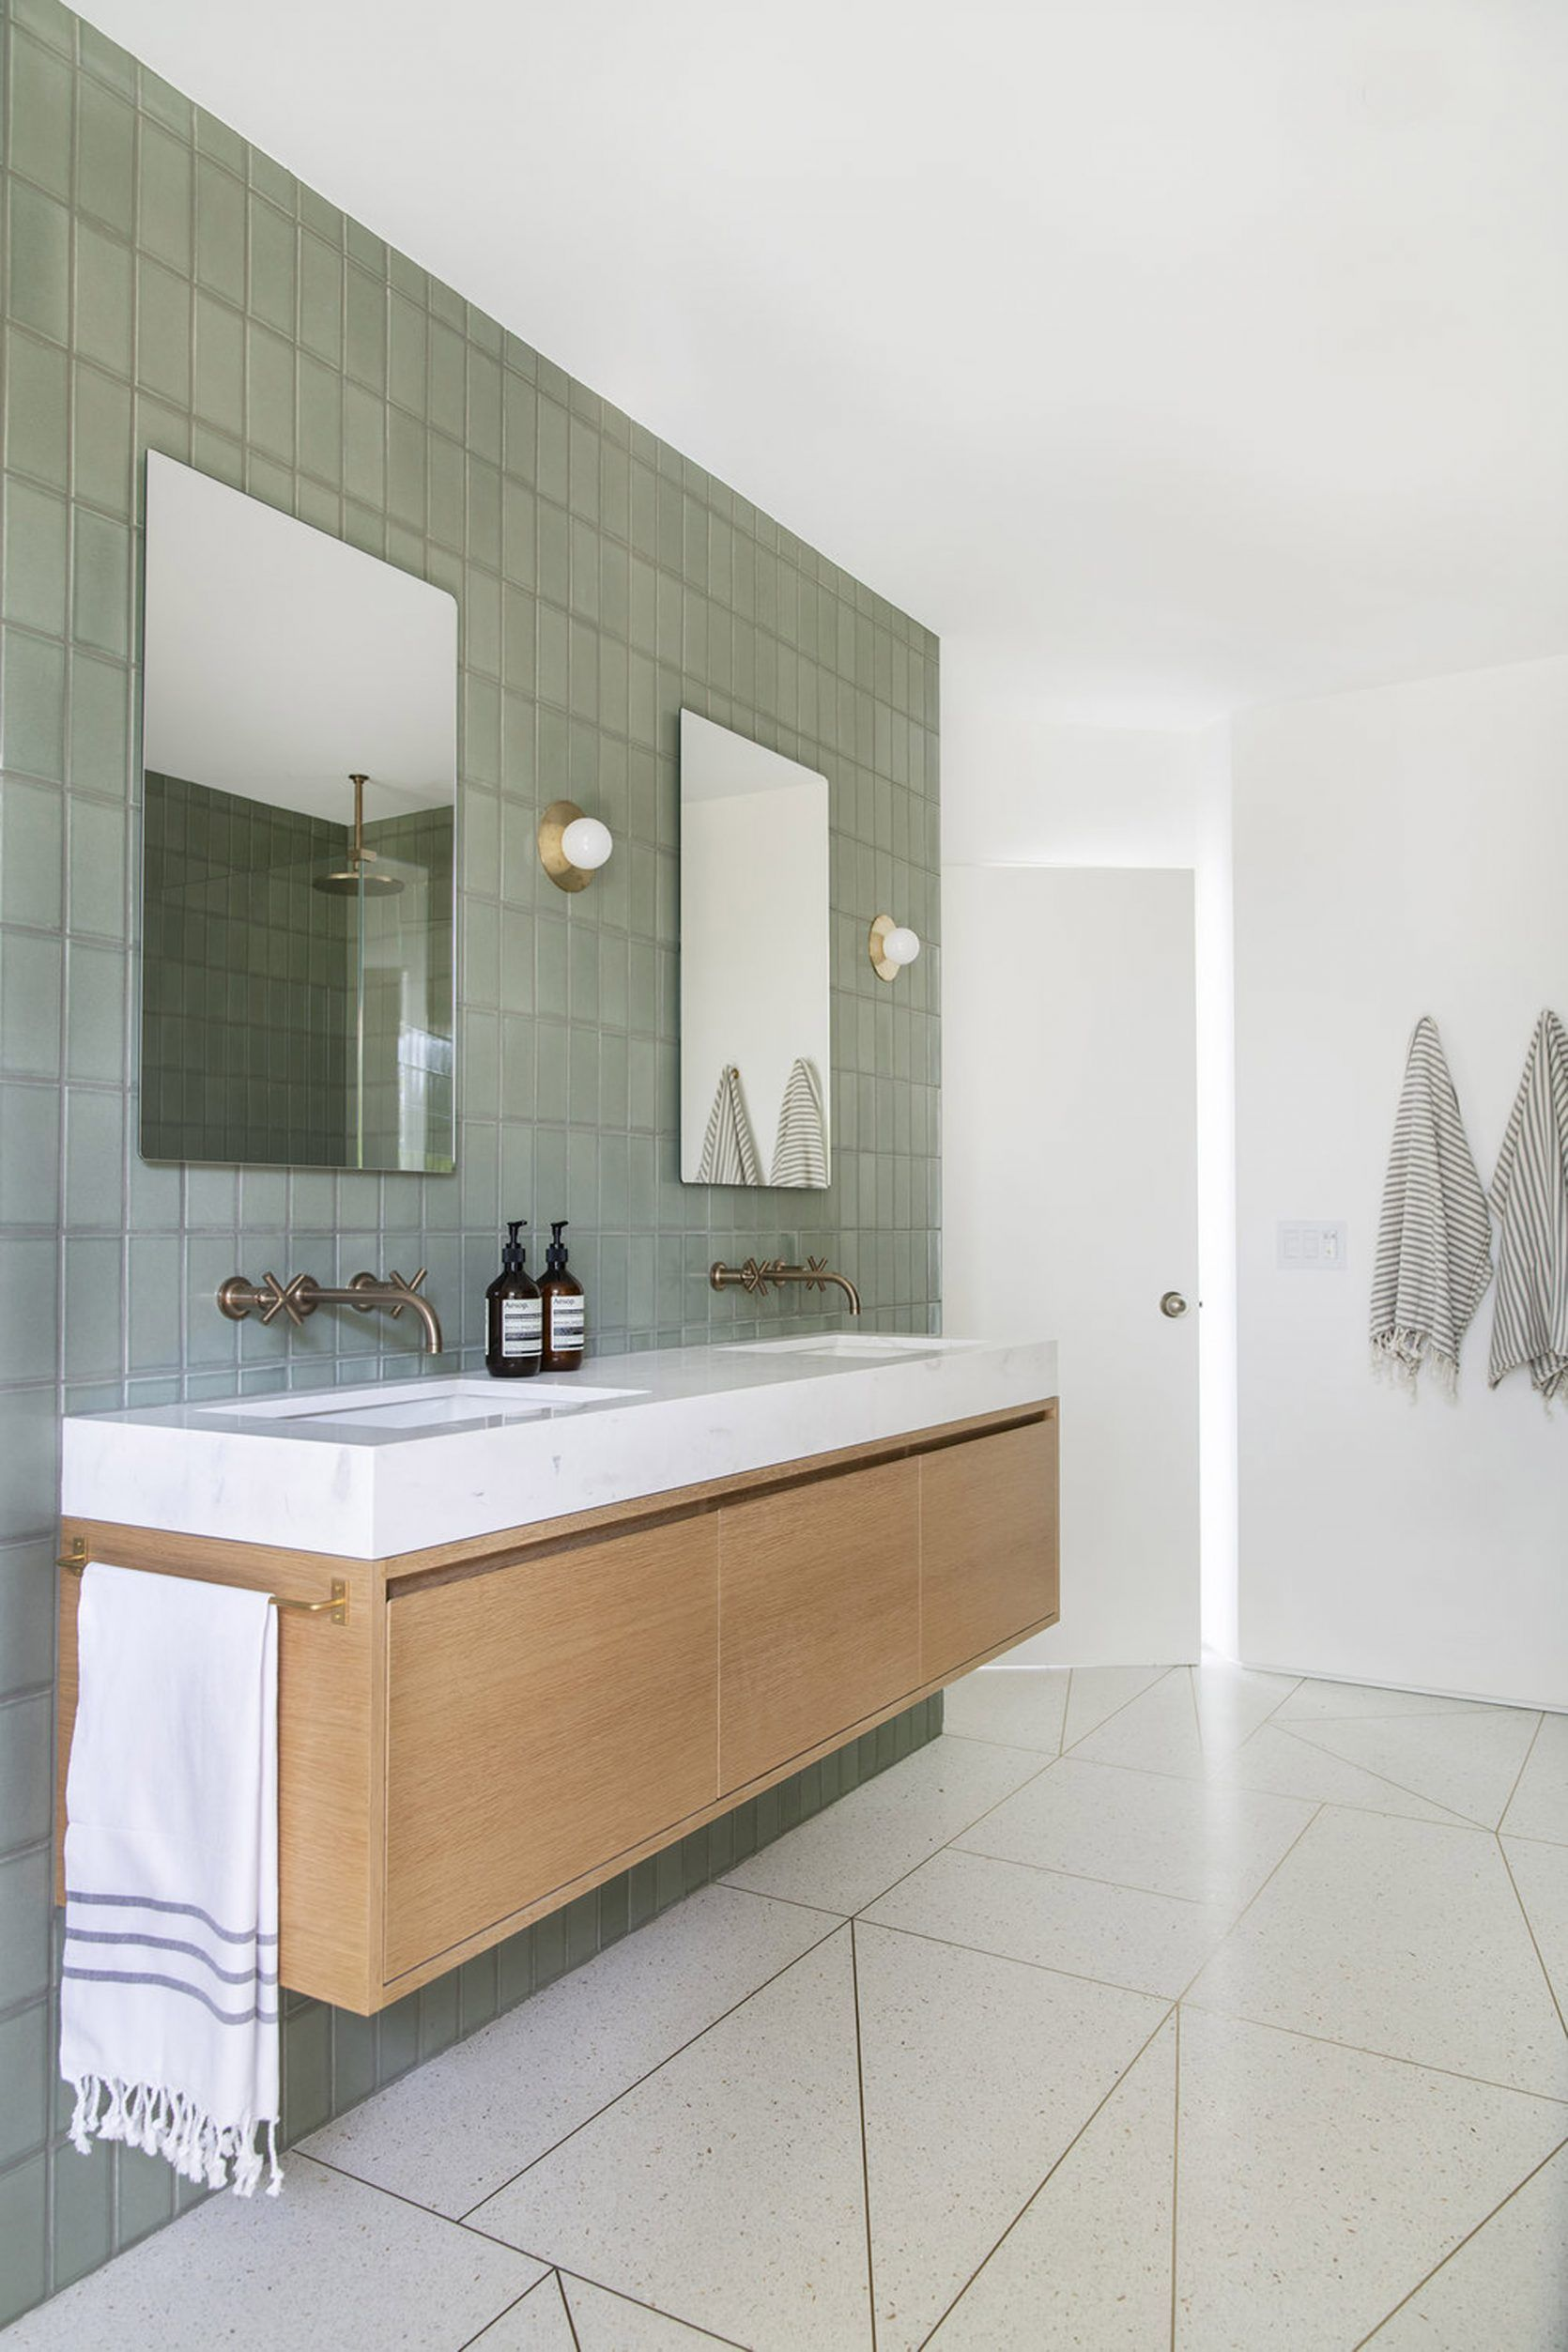 10 Of The Most Exciting Bathroom Design Trends For 2019 Mit Bildern Bad Doppelwaschtisch Badezimmer Innenausstattung Bad Styling